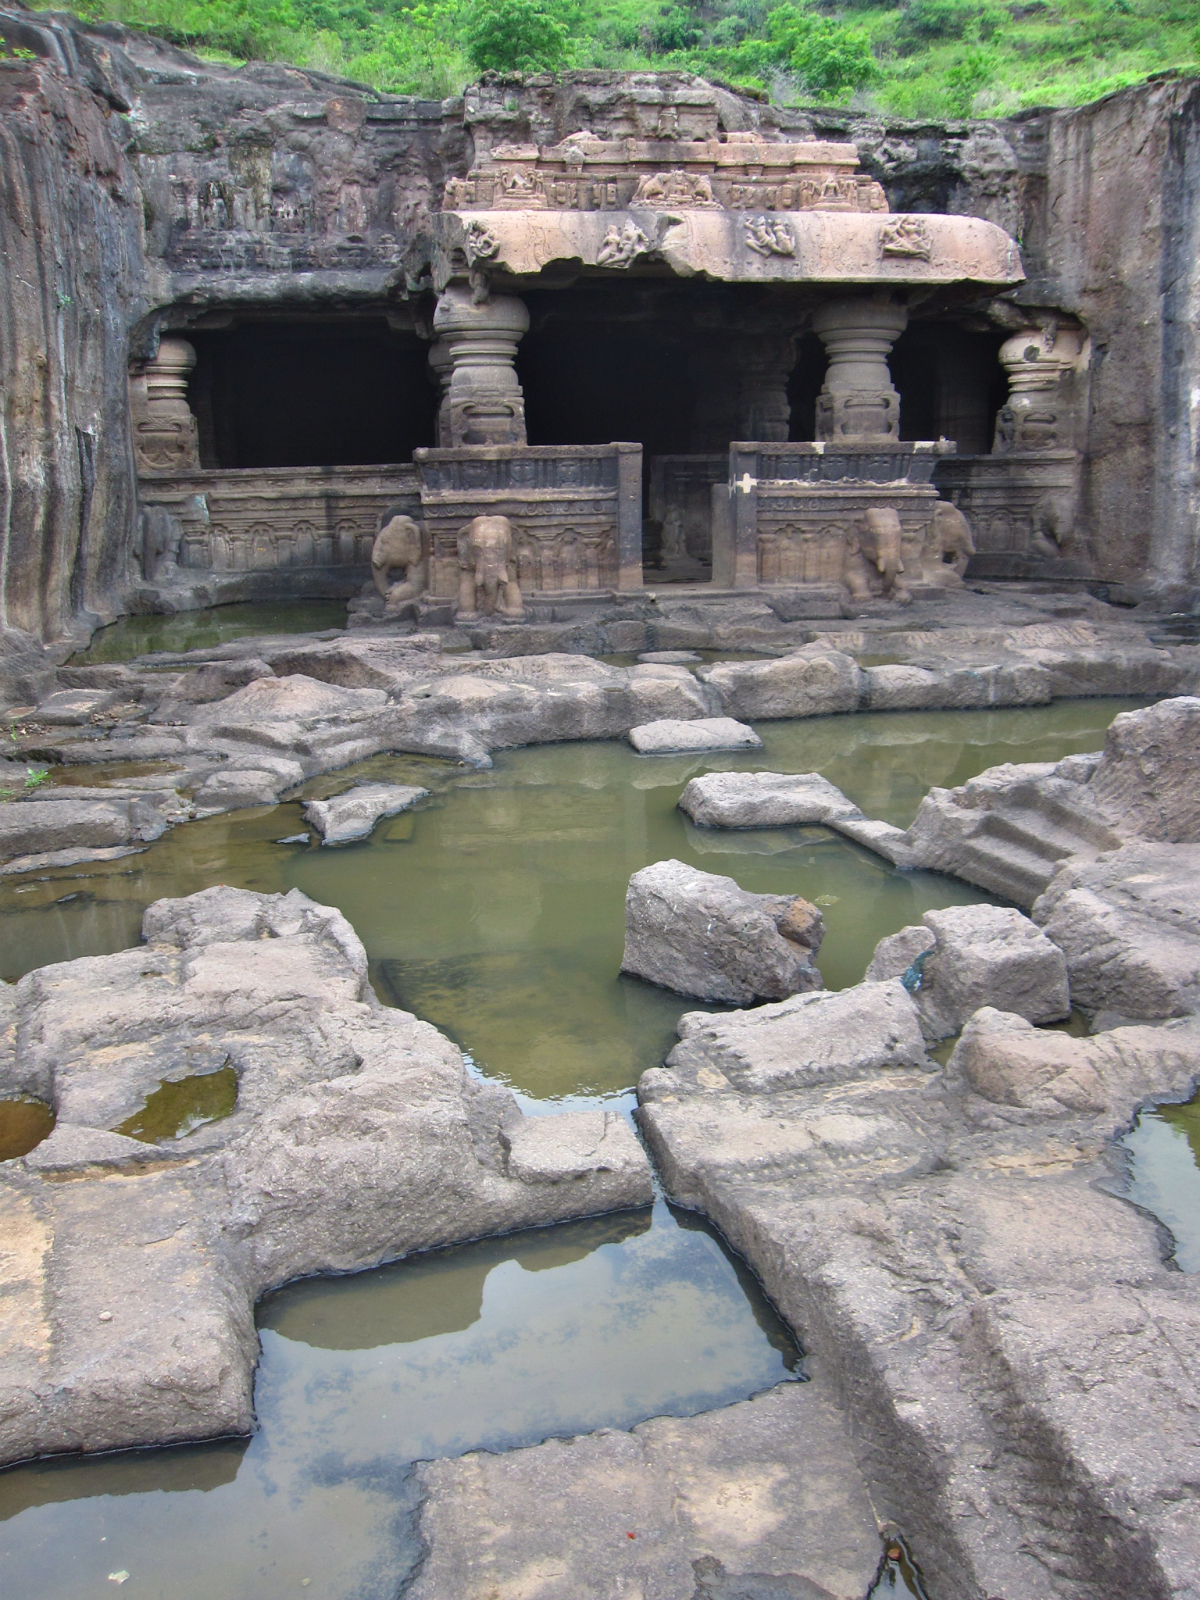 The Jain temple number 31s unfinished courtyard